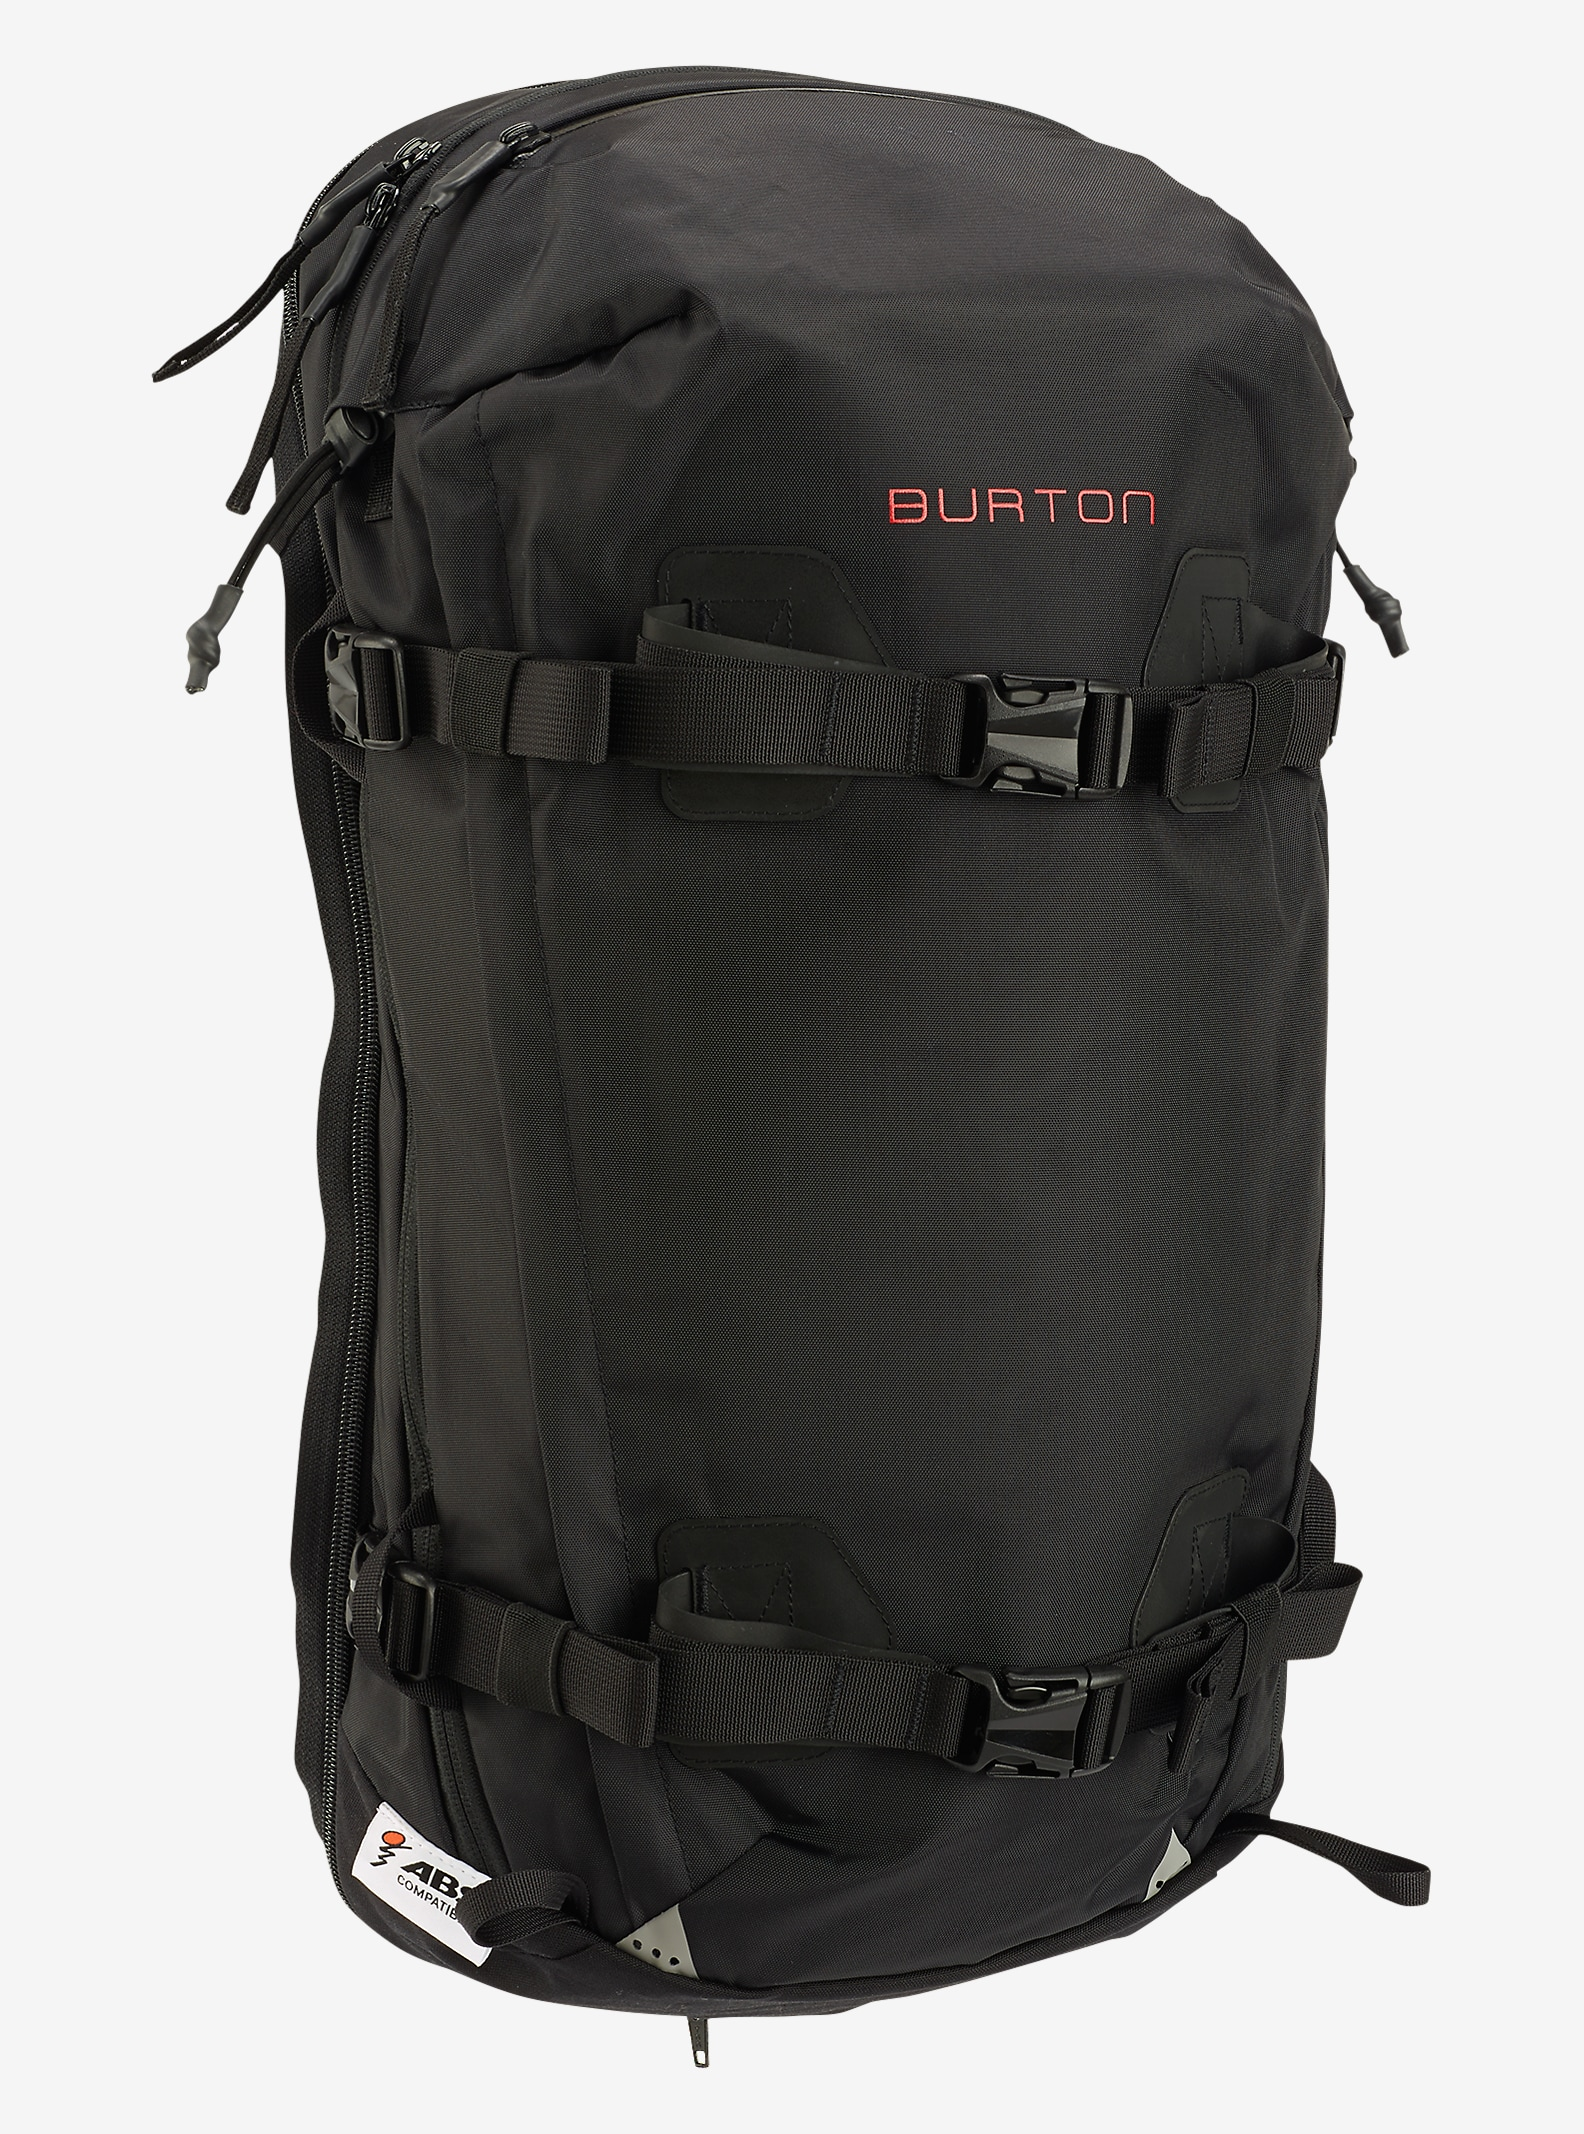 Burton ABS Vario 23L Cover shown in True Black Cordura®